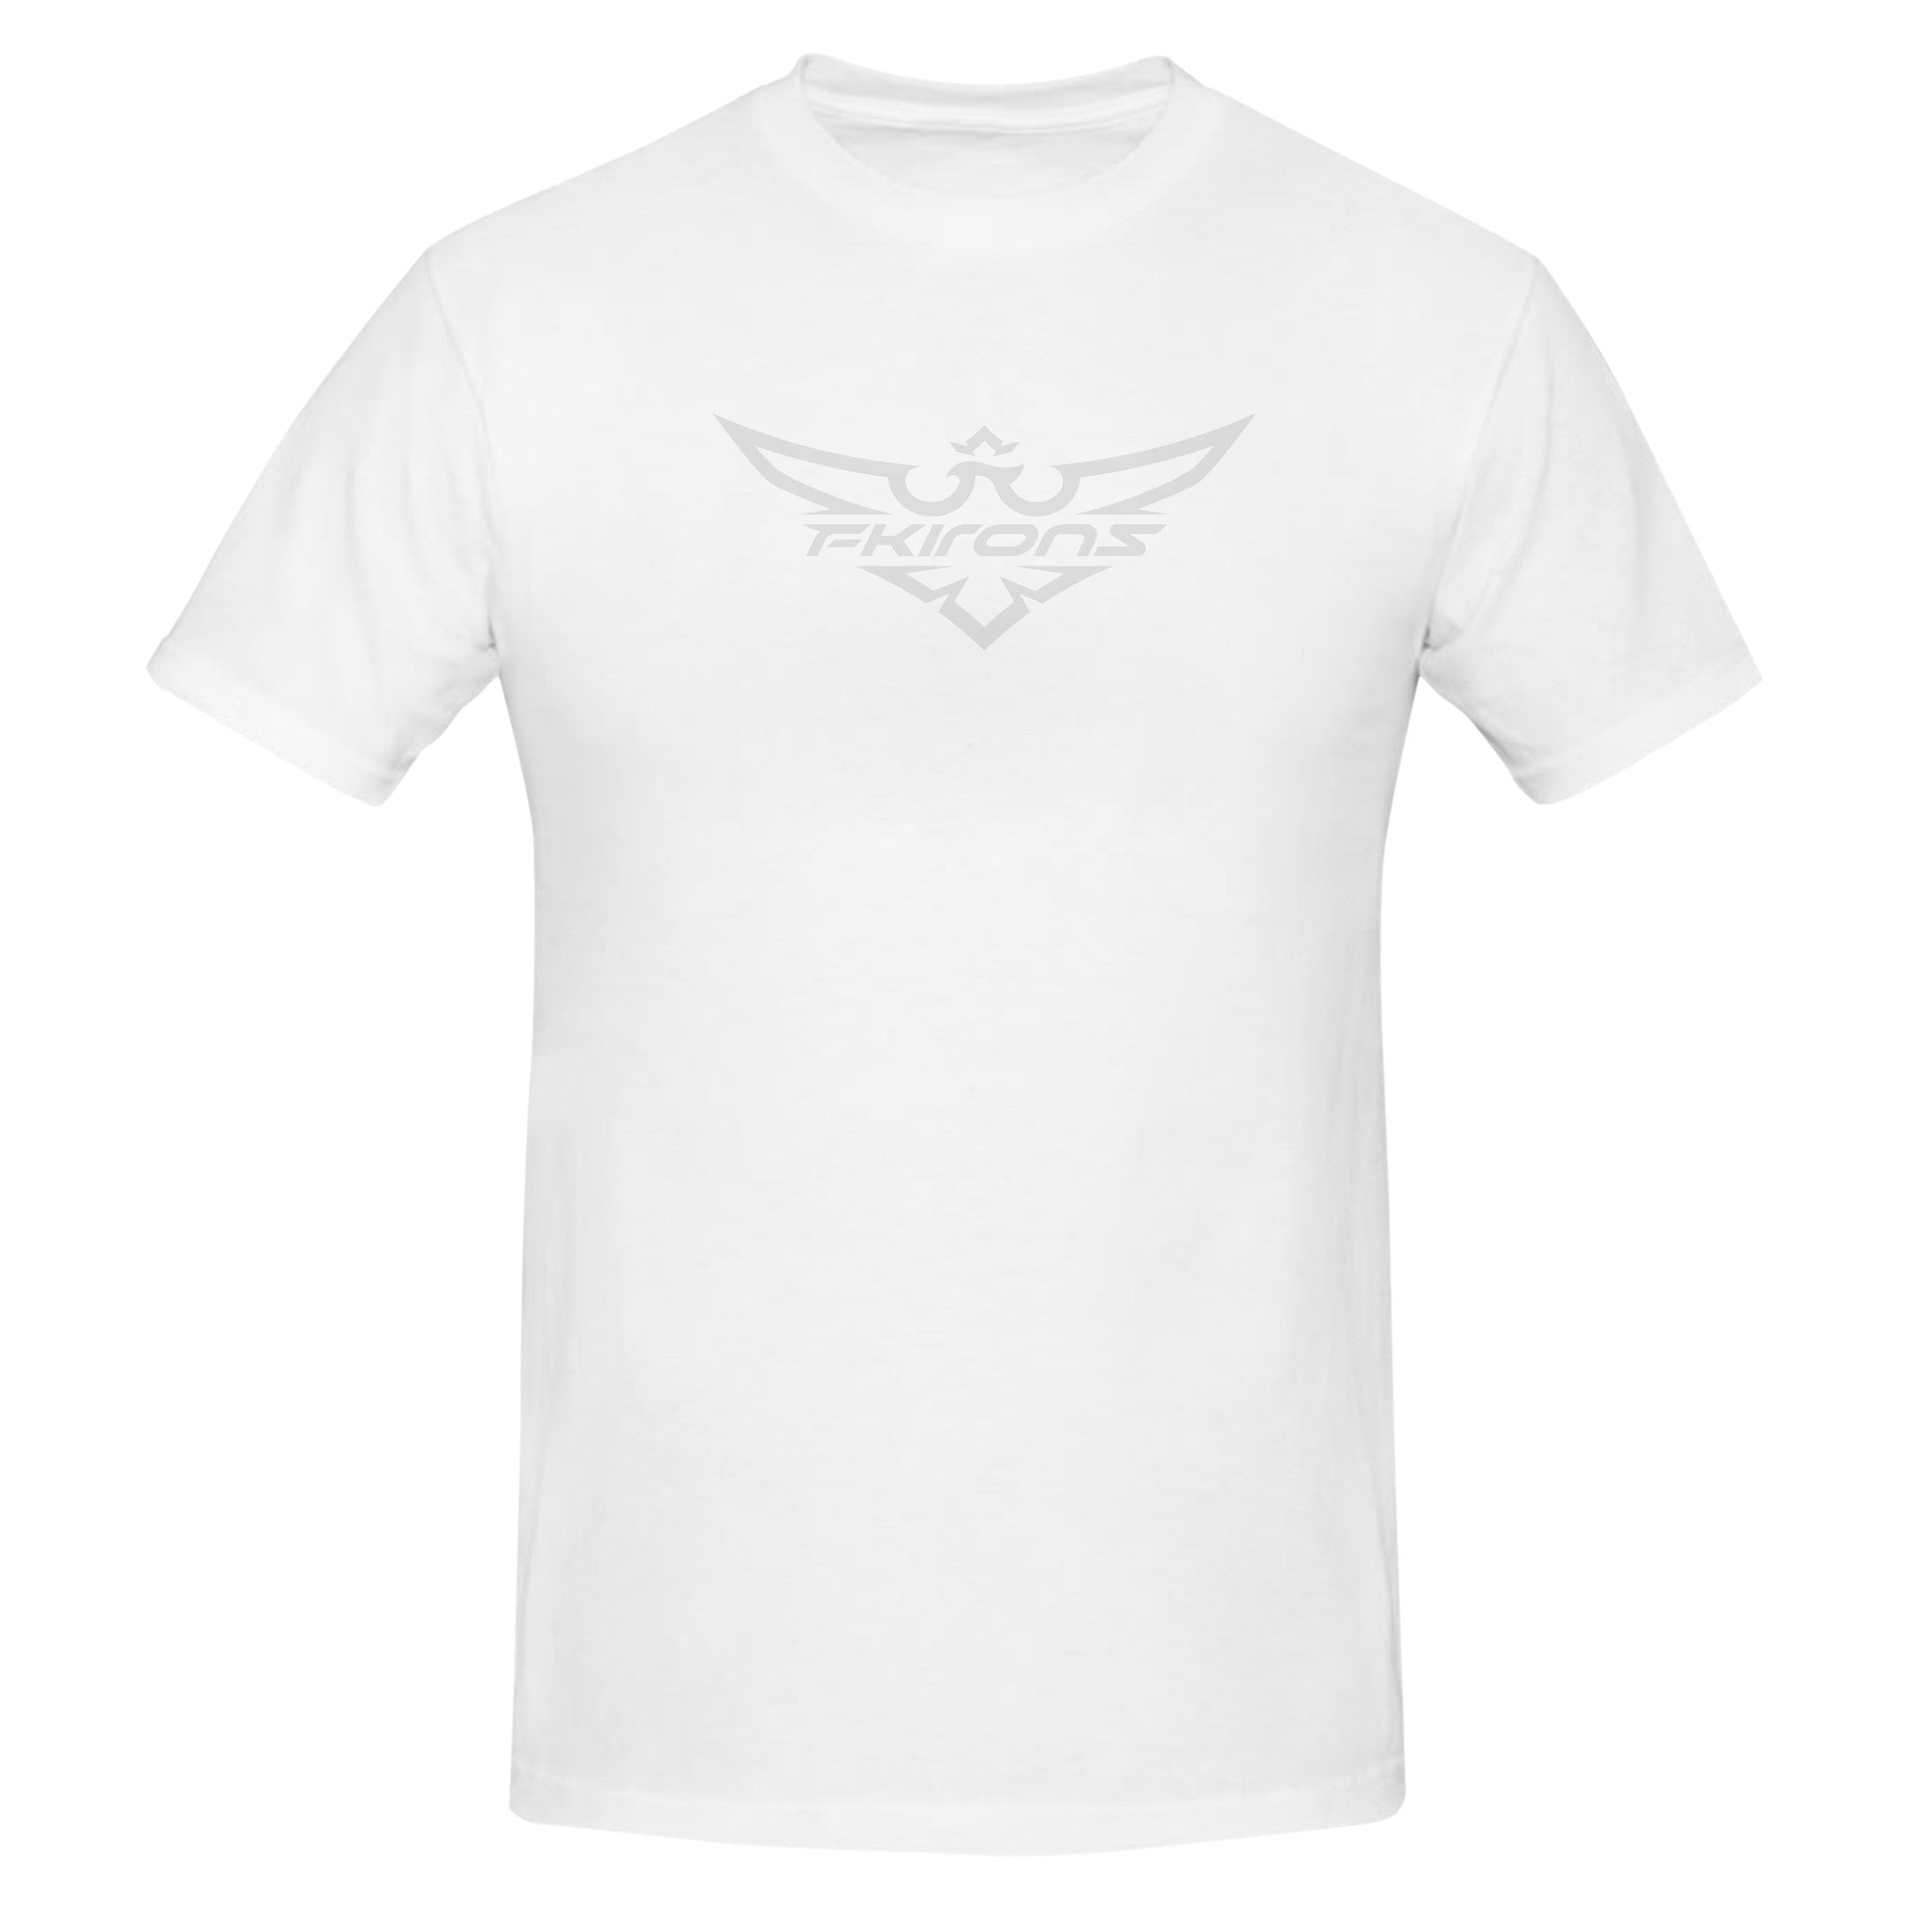 WHITE AND GREY FK IRONS LOGO T SHIRT